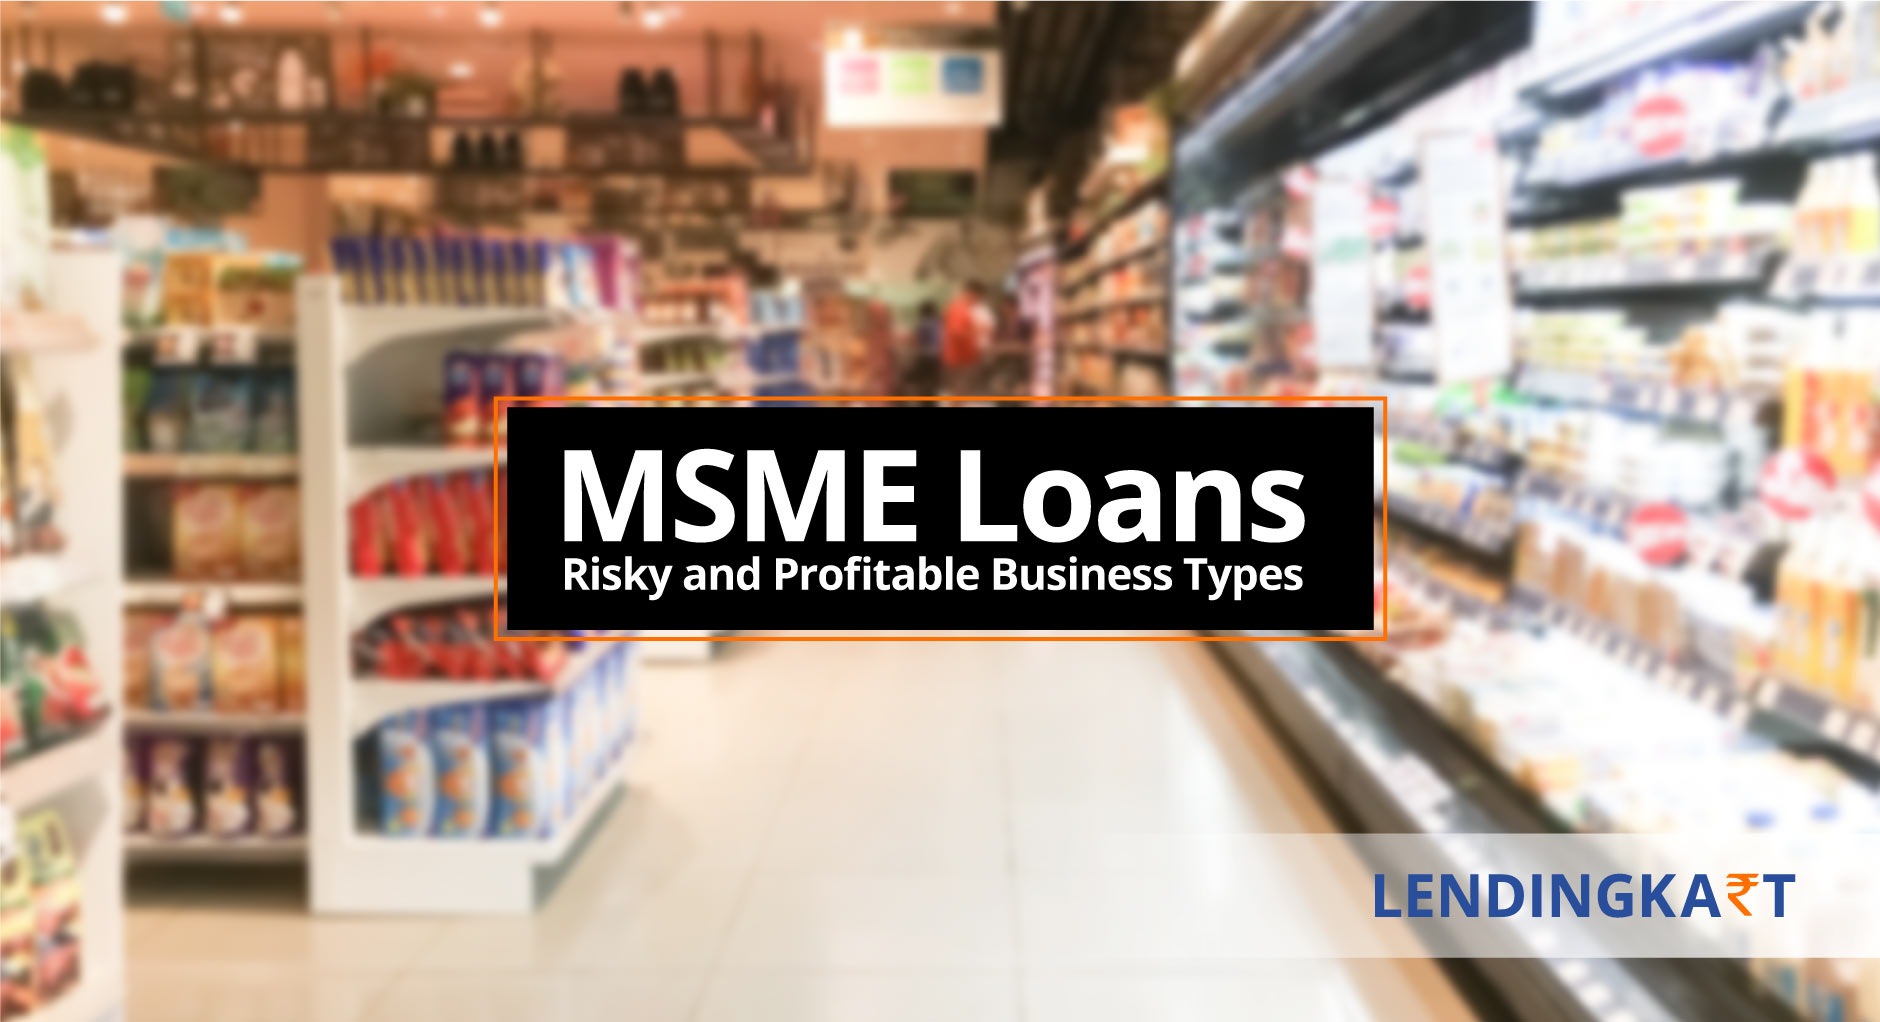 MSME Loans - Risky and Profitable Business Types